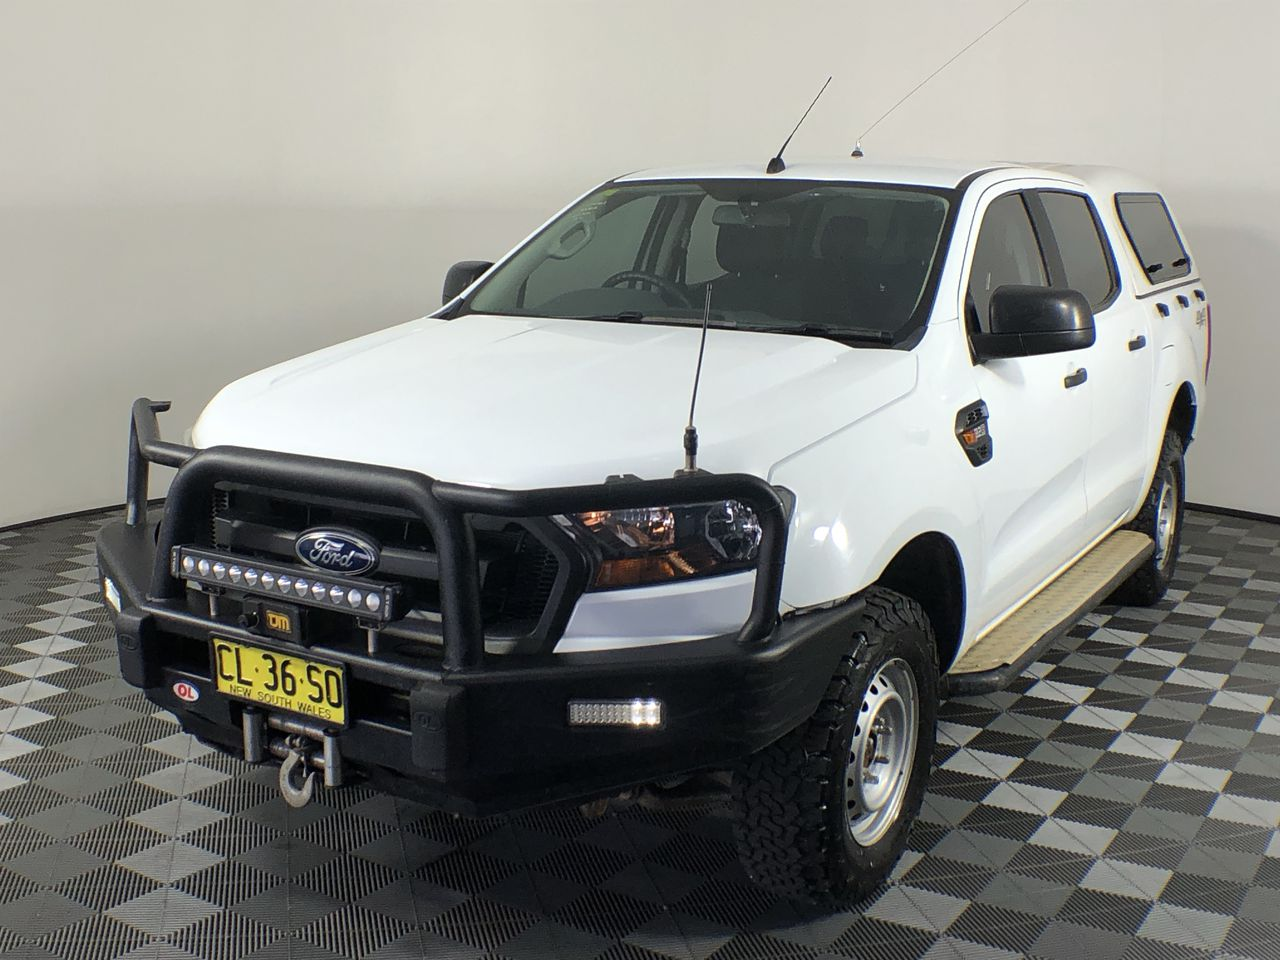 Ex-Gov 2016 Ford Ranger XL 4X4 PXII Turbo Diesel Automatic D/Cab 91,217km